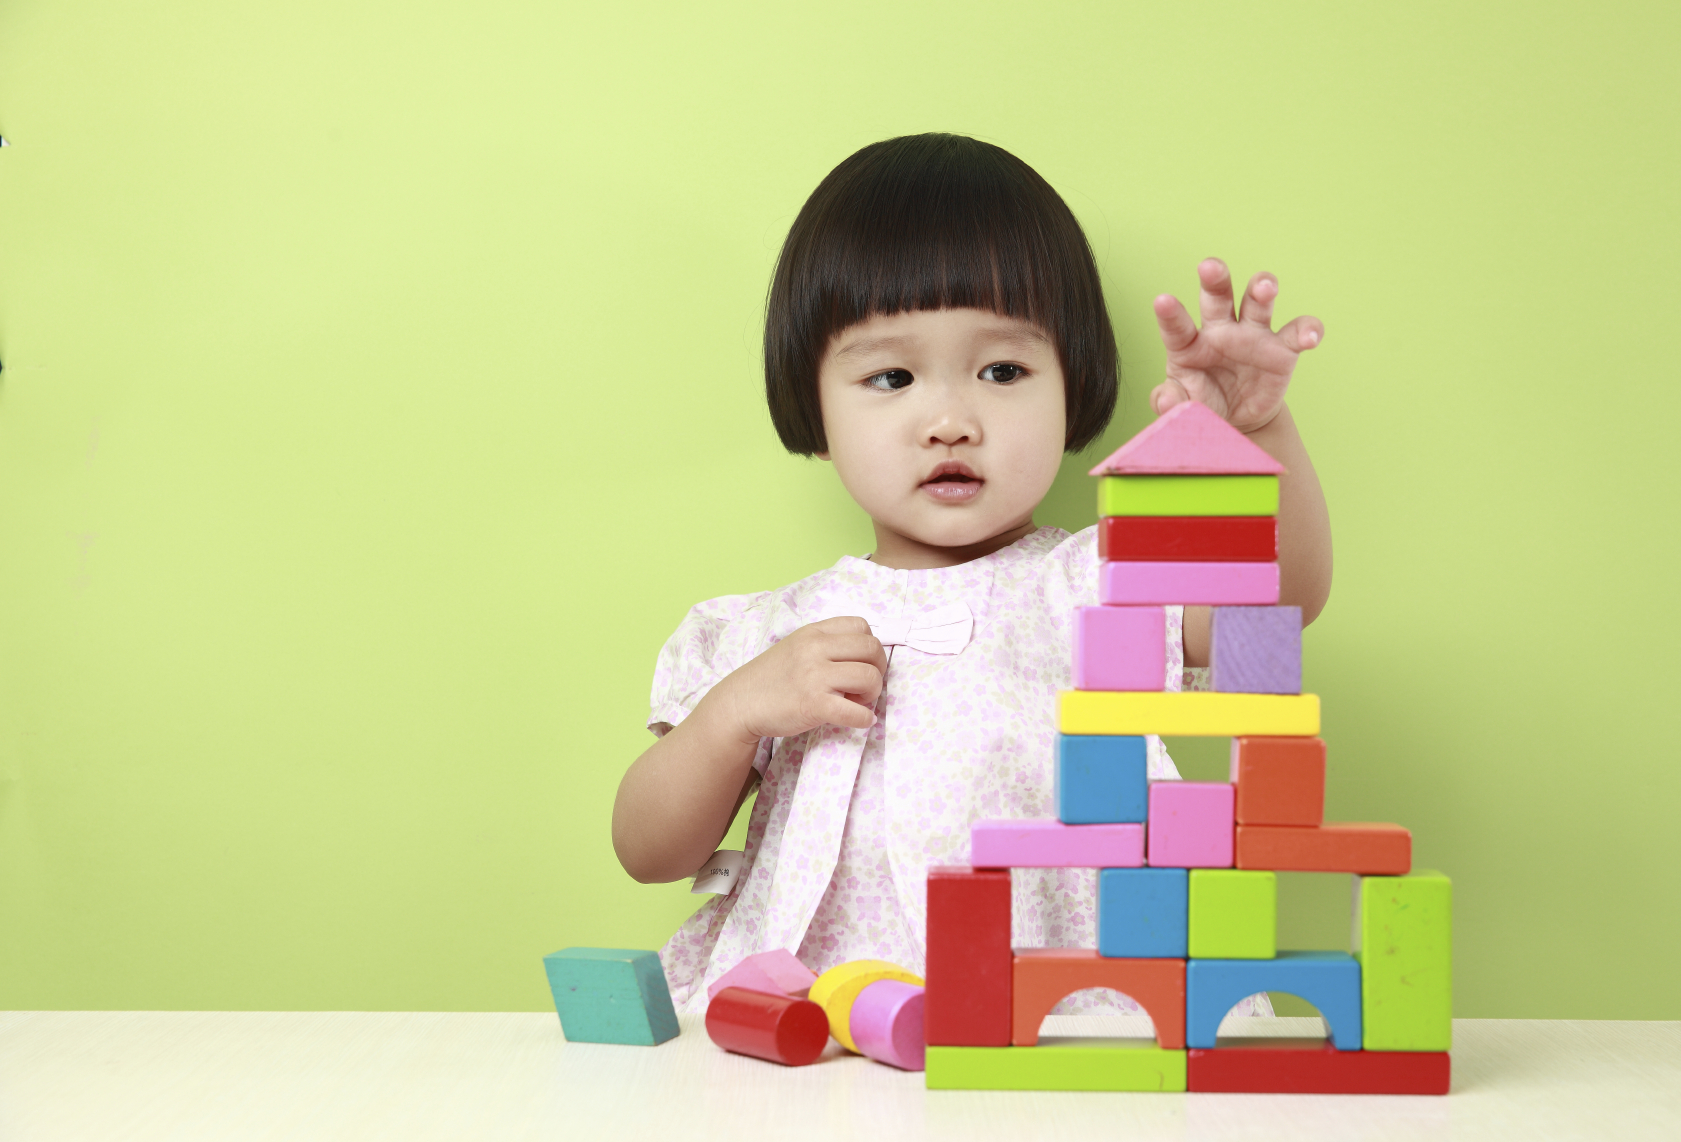 Toddlers May Have Better Problem Solving Skills Than Adults